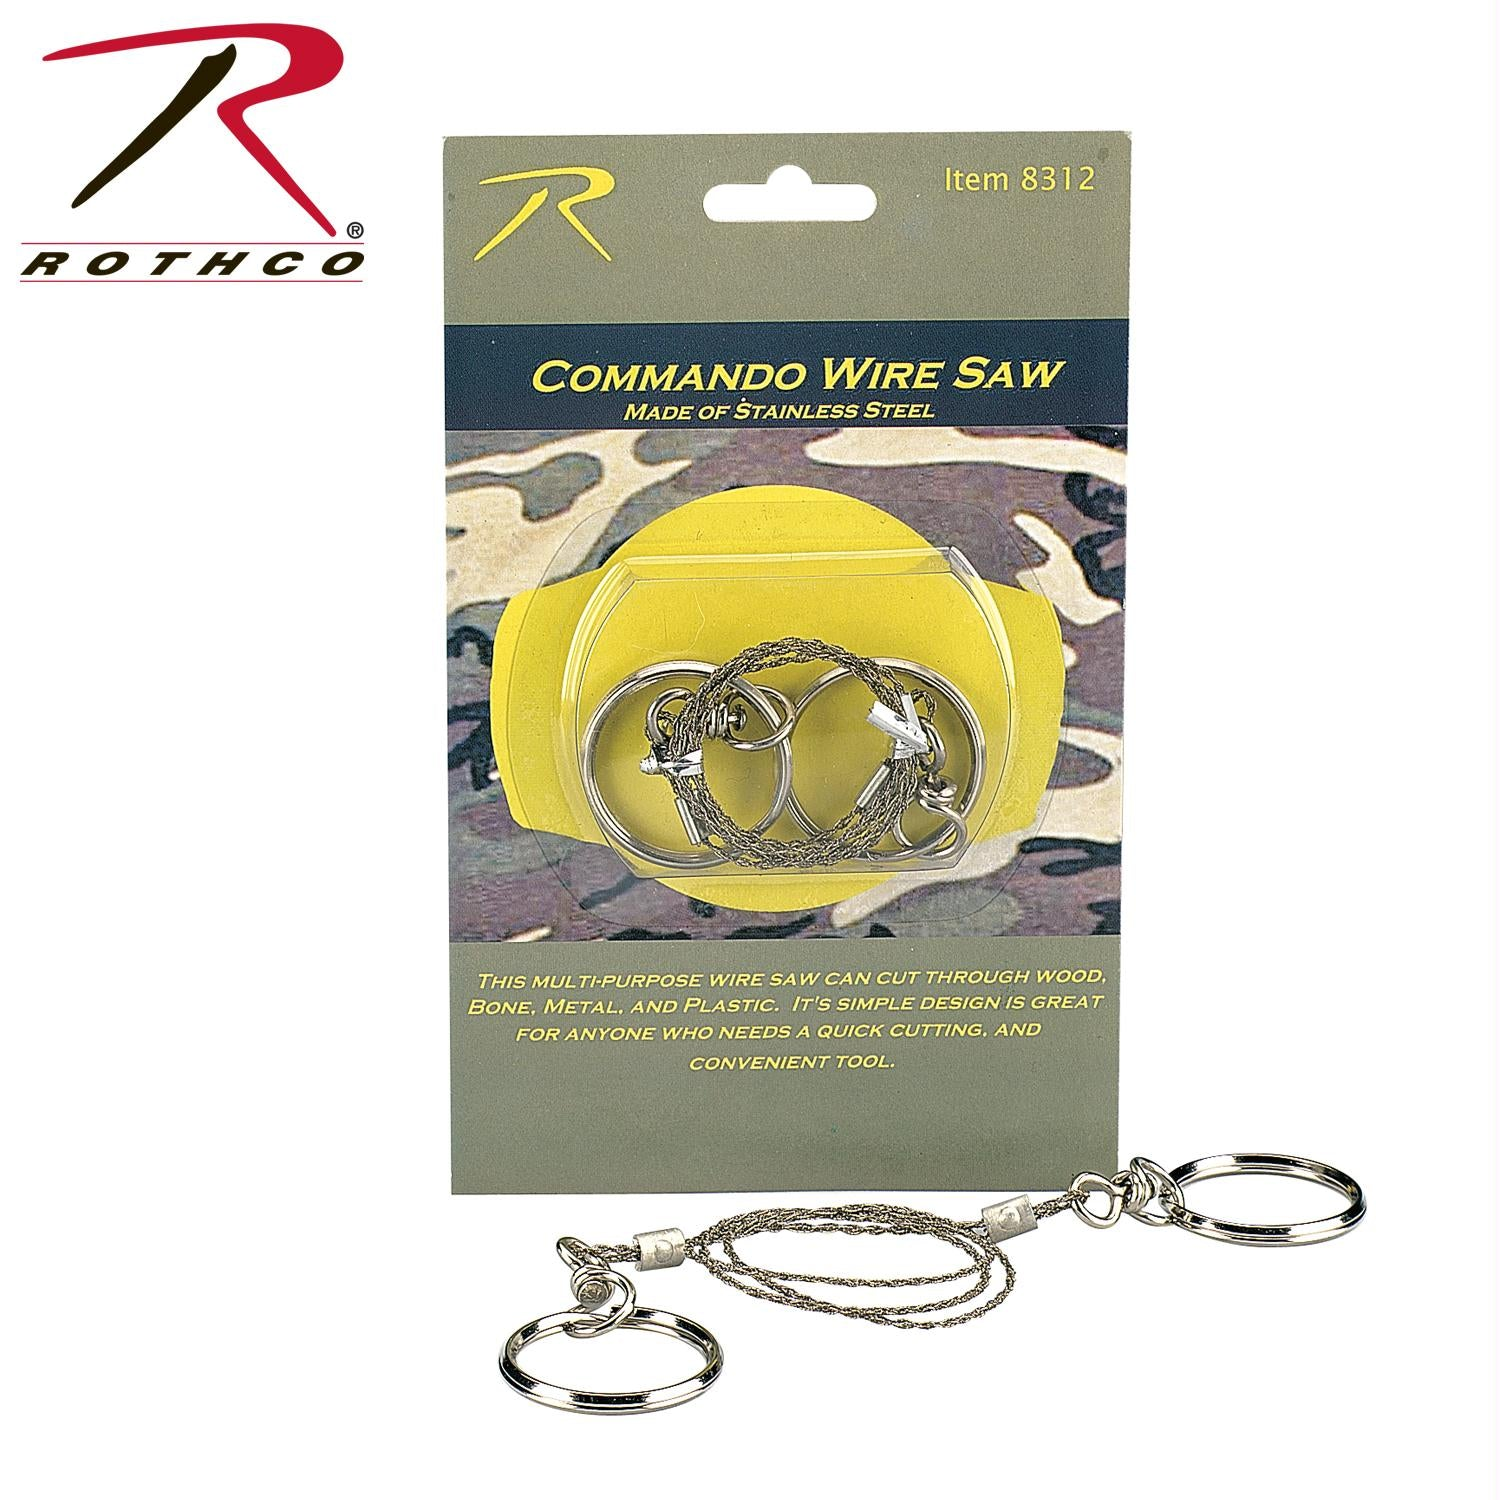 Rothco Commando Wire Saw